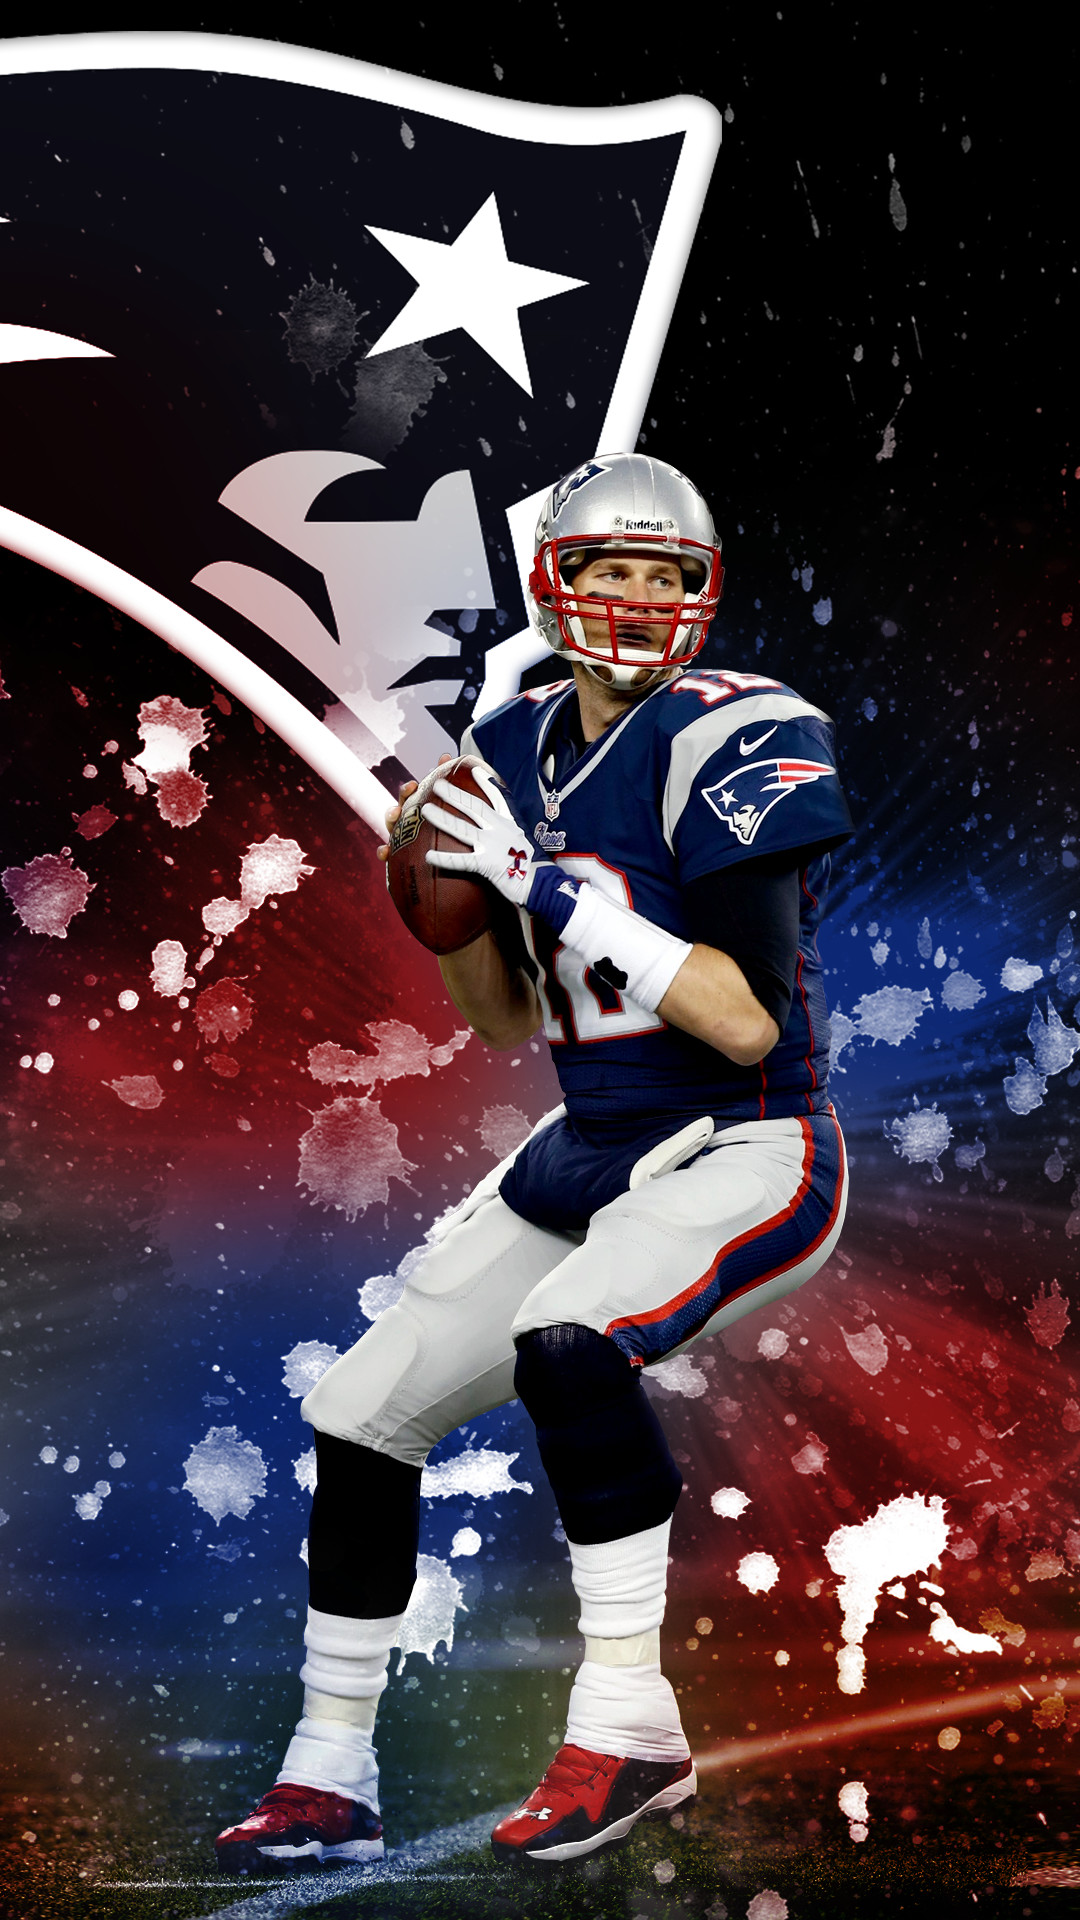 I made a Tom Brady phone wallpaper for my fellow Champions :) Hope you all  enjoy it!